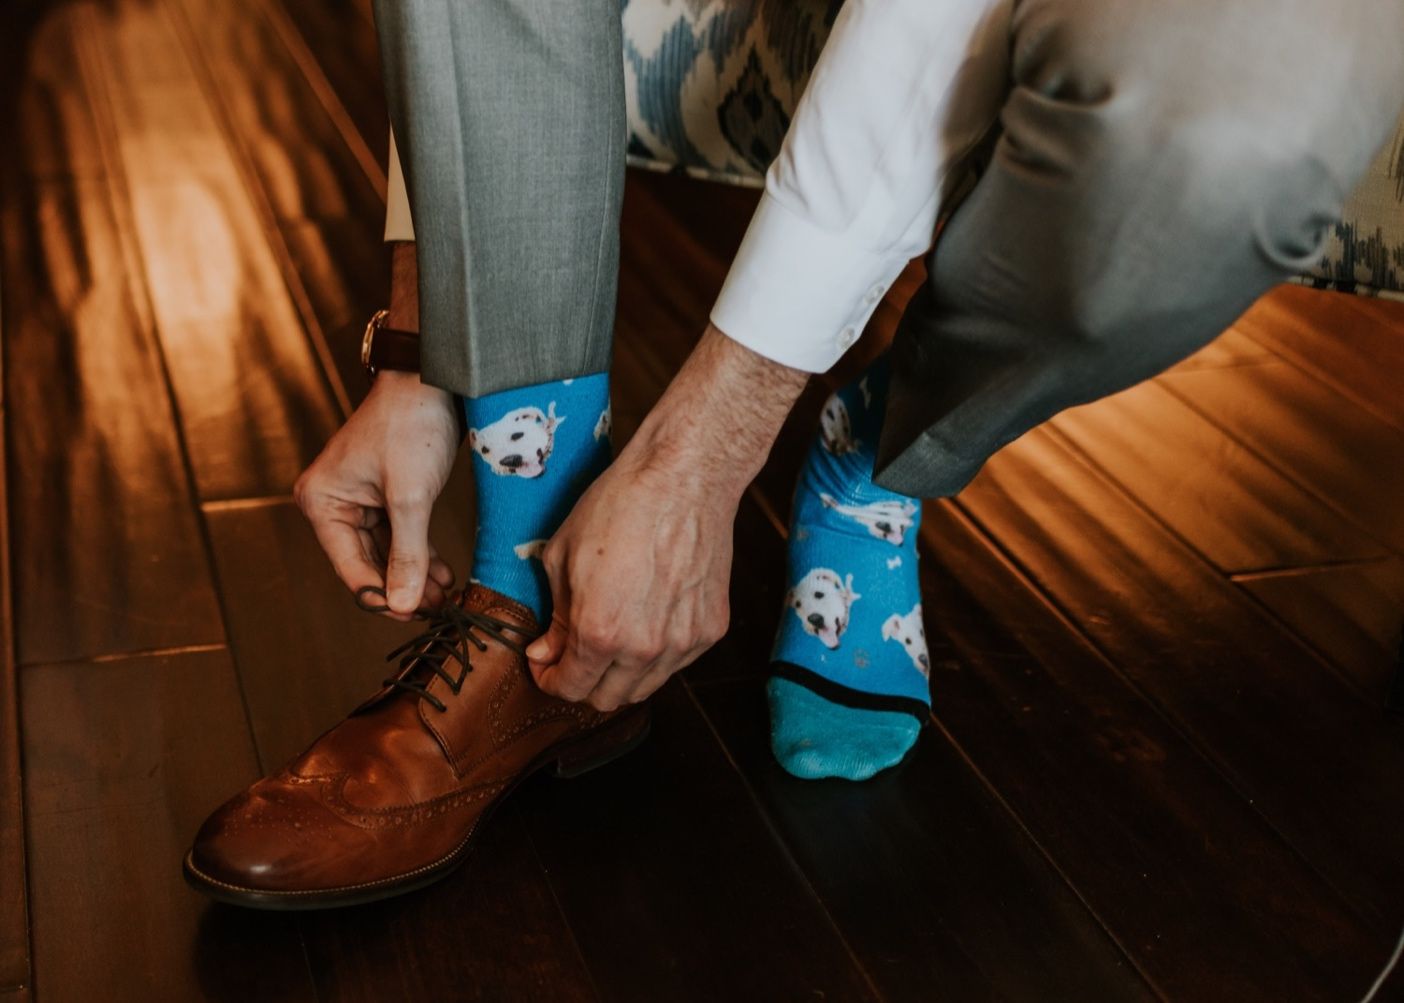 Groom putting on shoes. Groom personalized socks. Groom getting ready photos. Canary Hotel Santa Barbara.